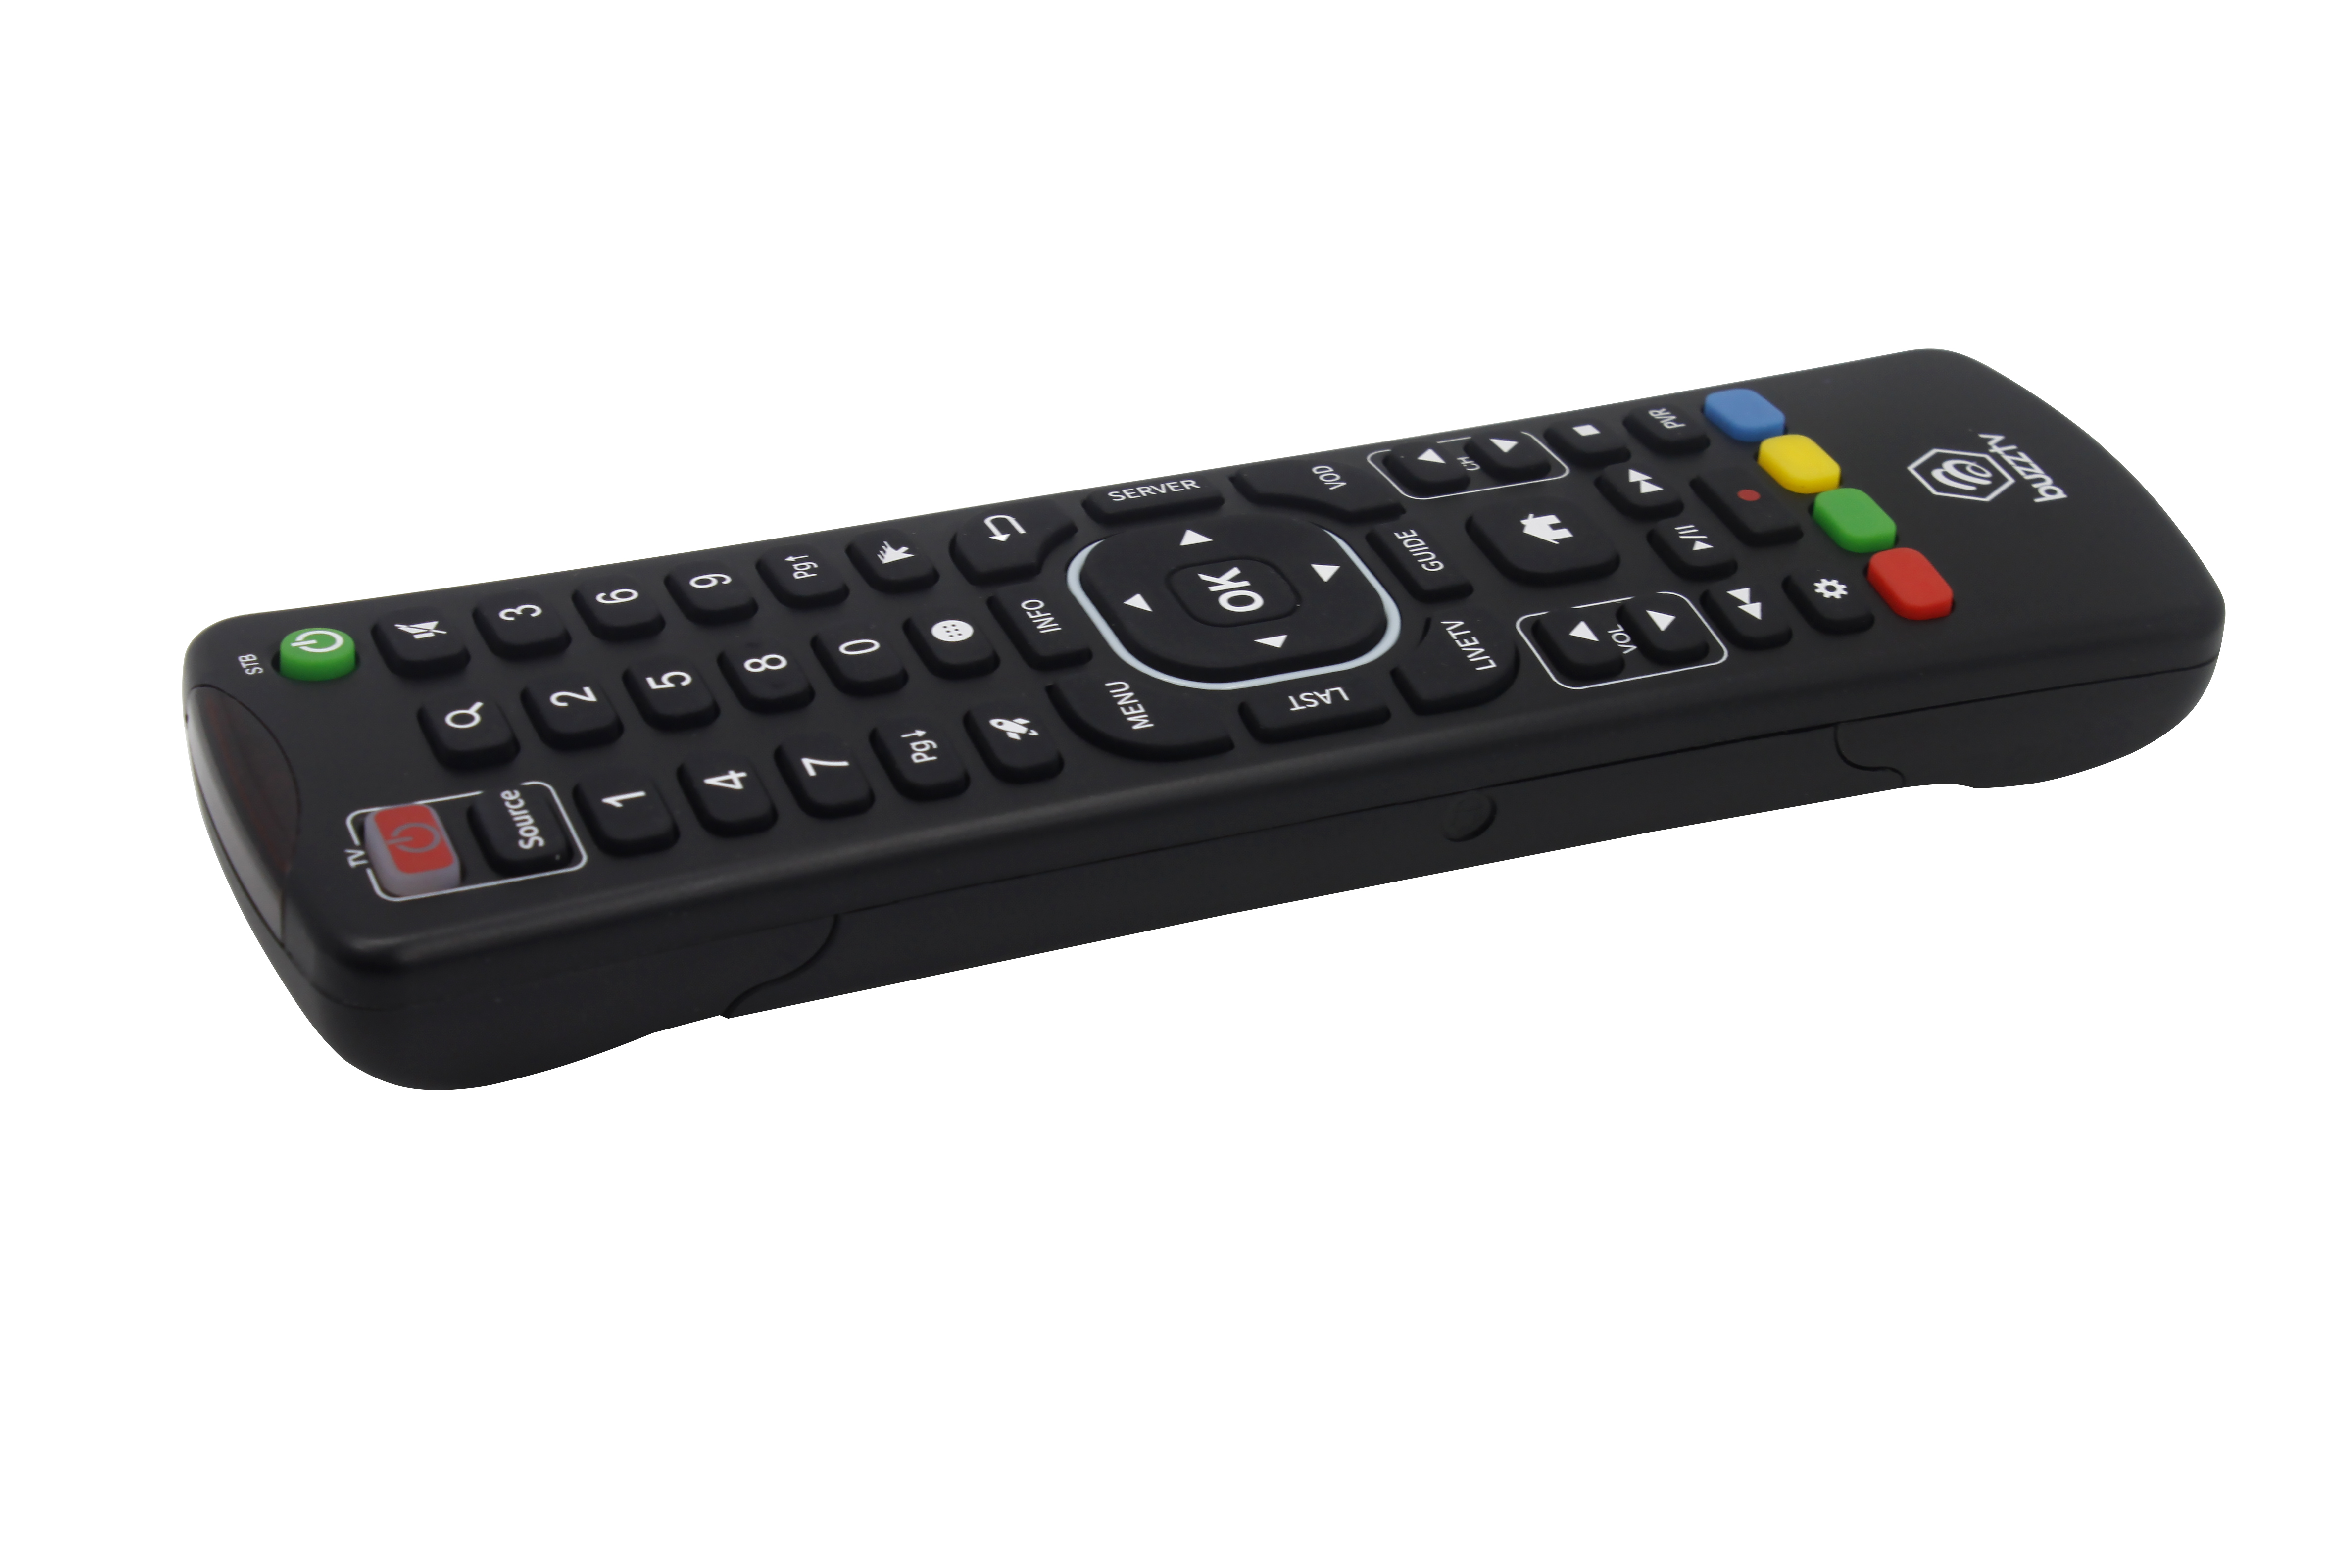 BuzzTV ARQ-100 Wireless Air Mouse Keyboard Remote - WorldWidesatellites